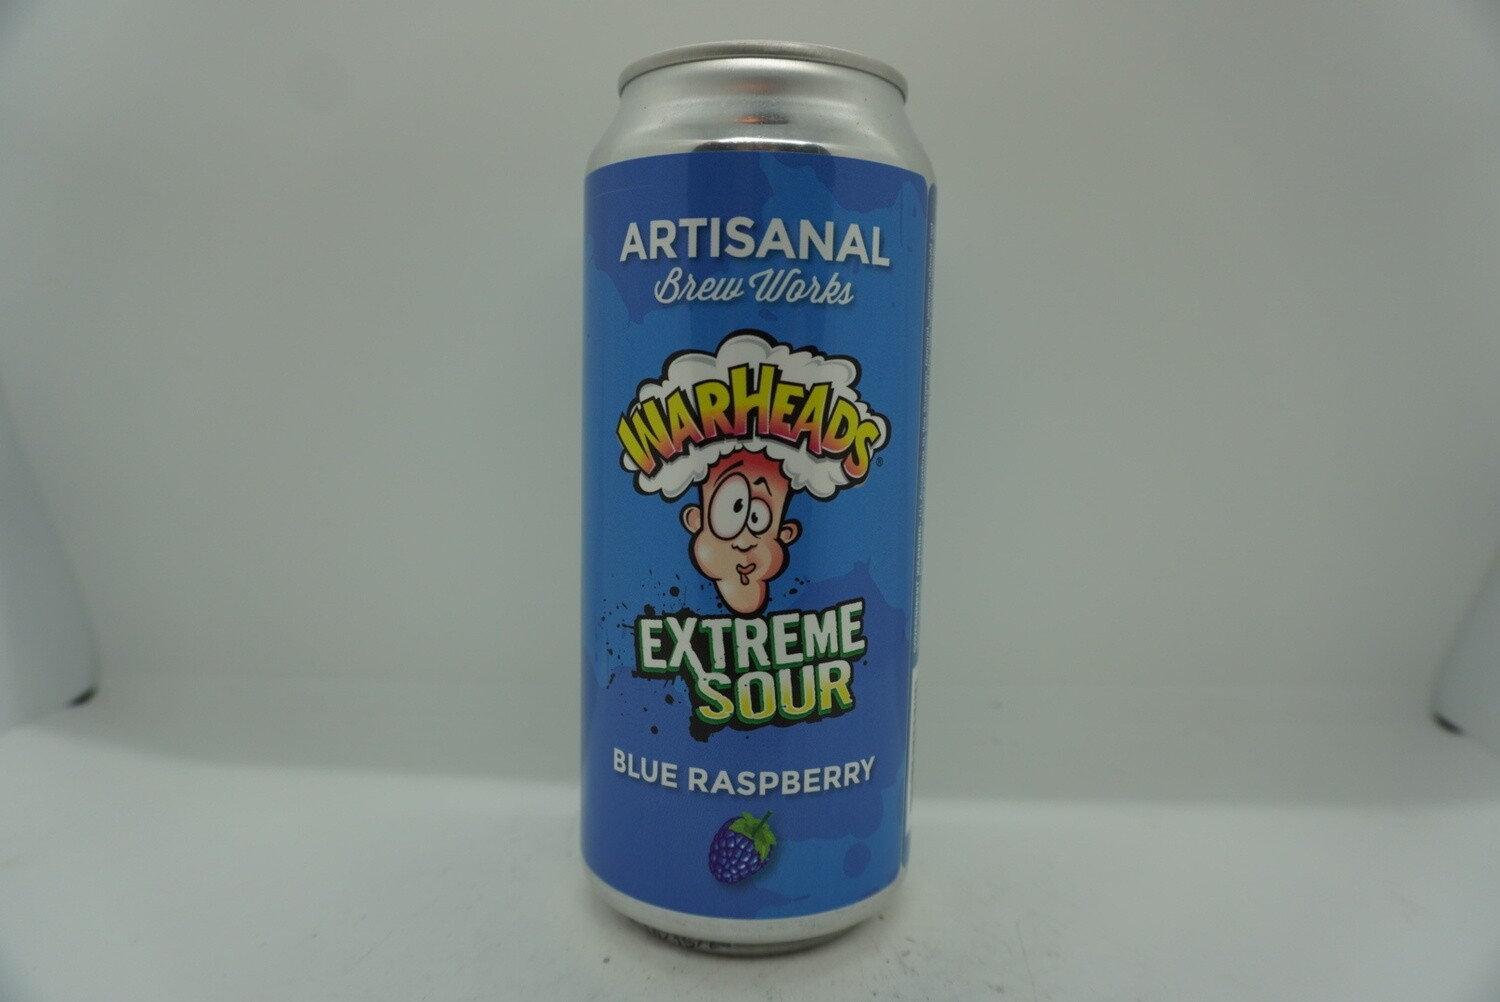 Artisanal Brew Works - Warheads Extreme Sour Blue Raspberry - Sour Fruited - 5% ABV - 160z Can